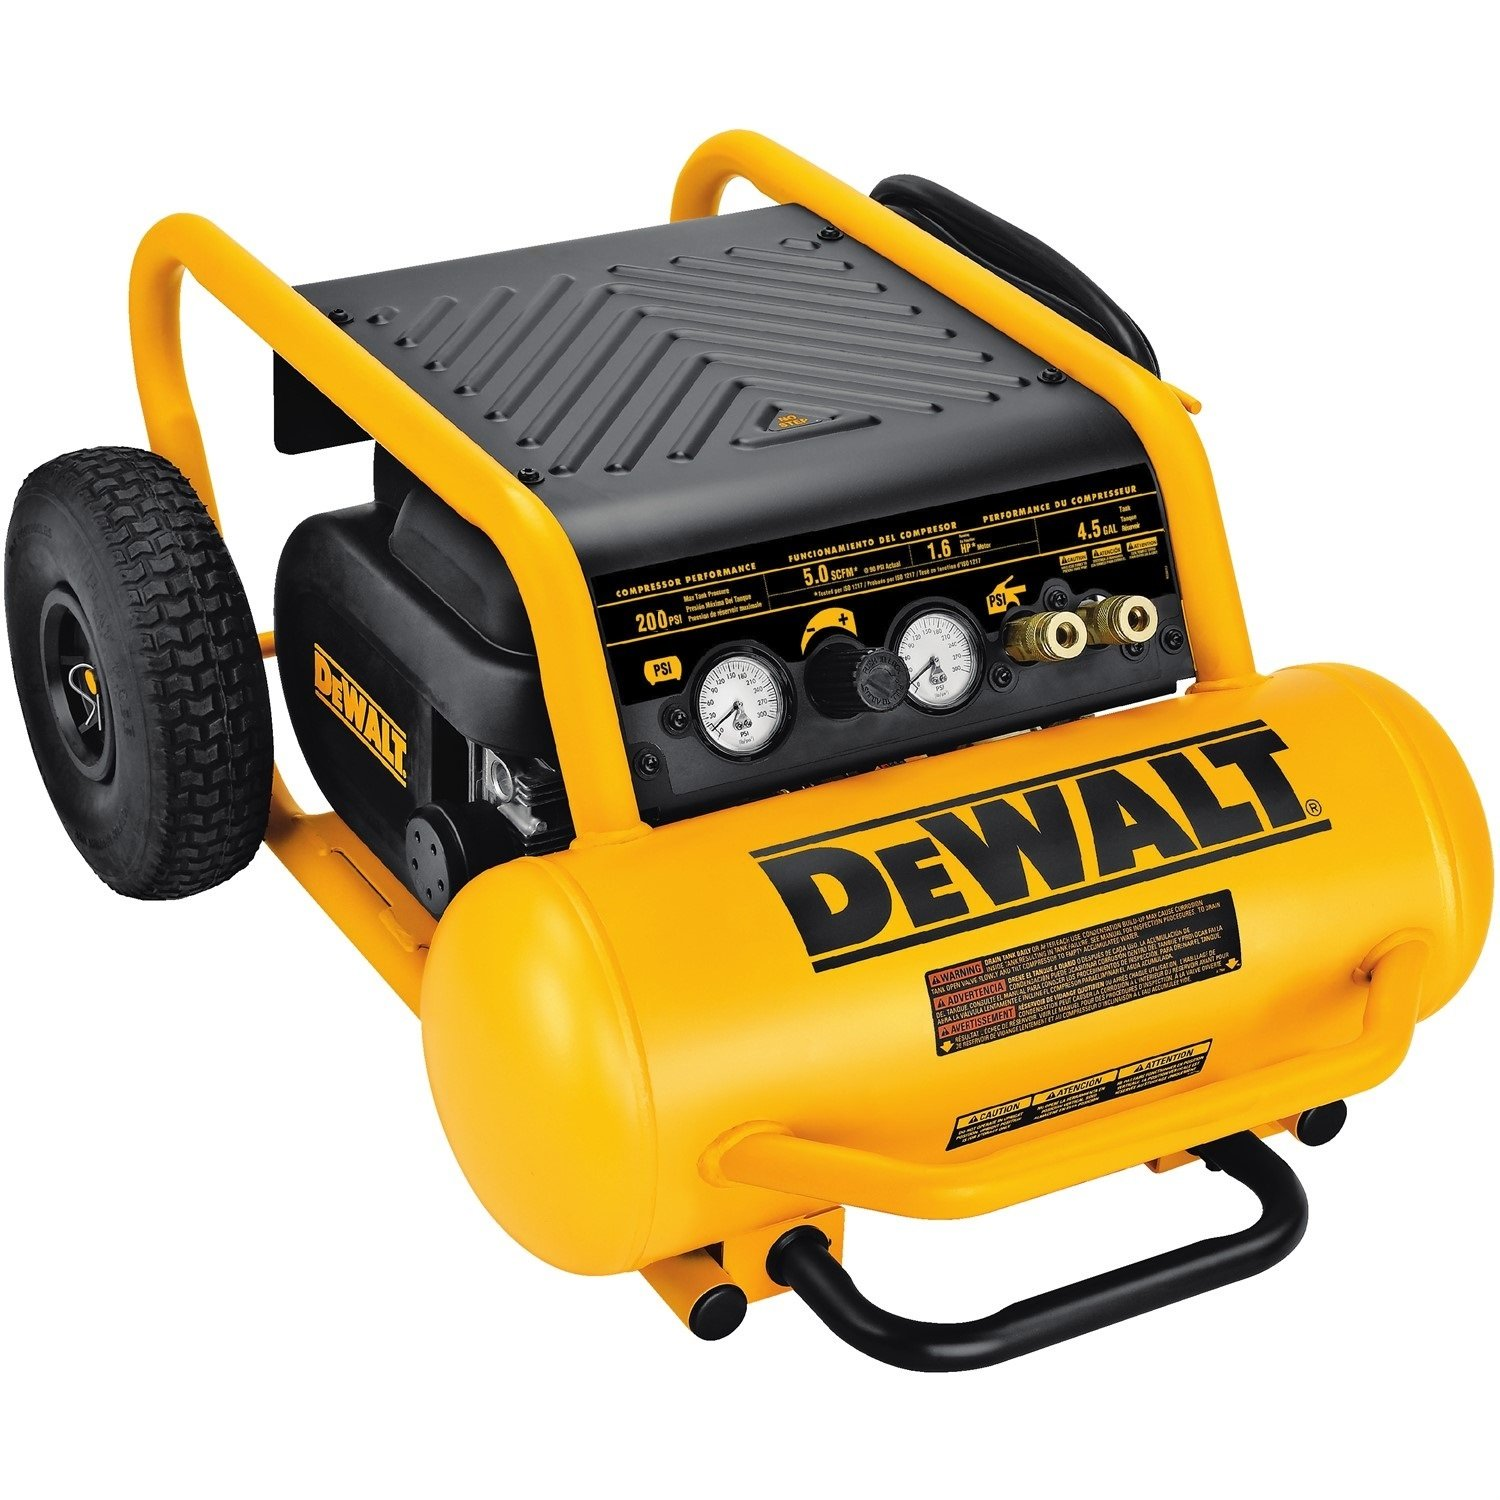 DEWALT D55146 4-1/2-Gallon 200-PSI Hand Carry Compressor with Wheels by DEWALT